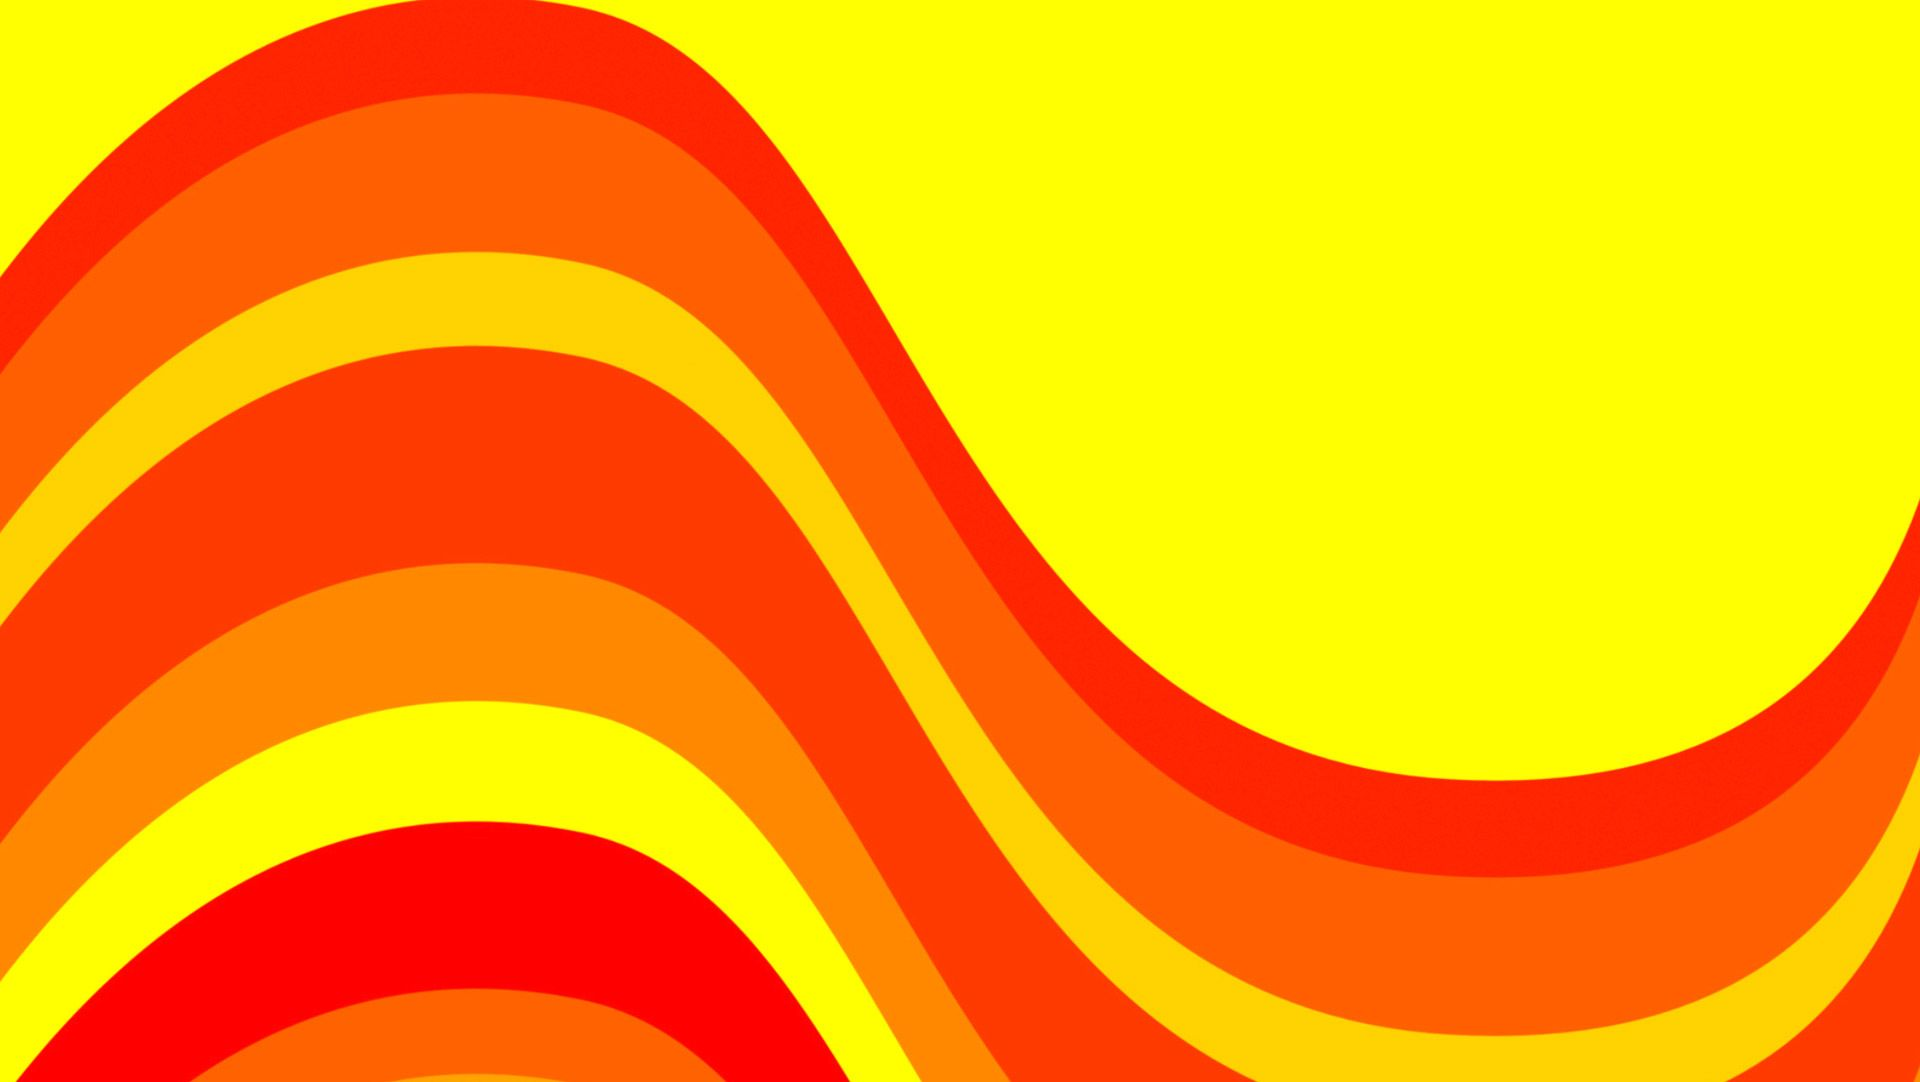 Orange Red Orange Yellow Background Free Stock Photo Hd Public Domain Yellow Background Red Wallpaper Red Pictures